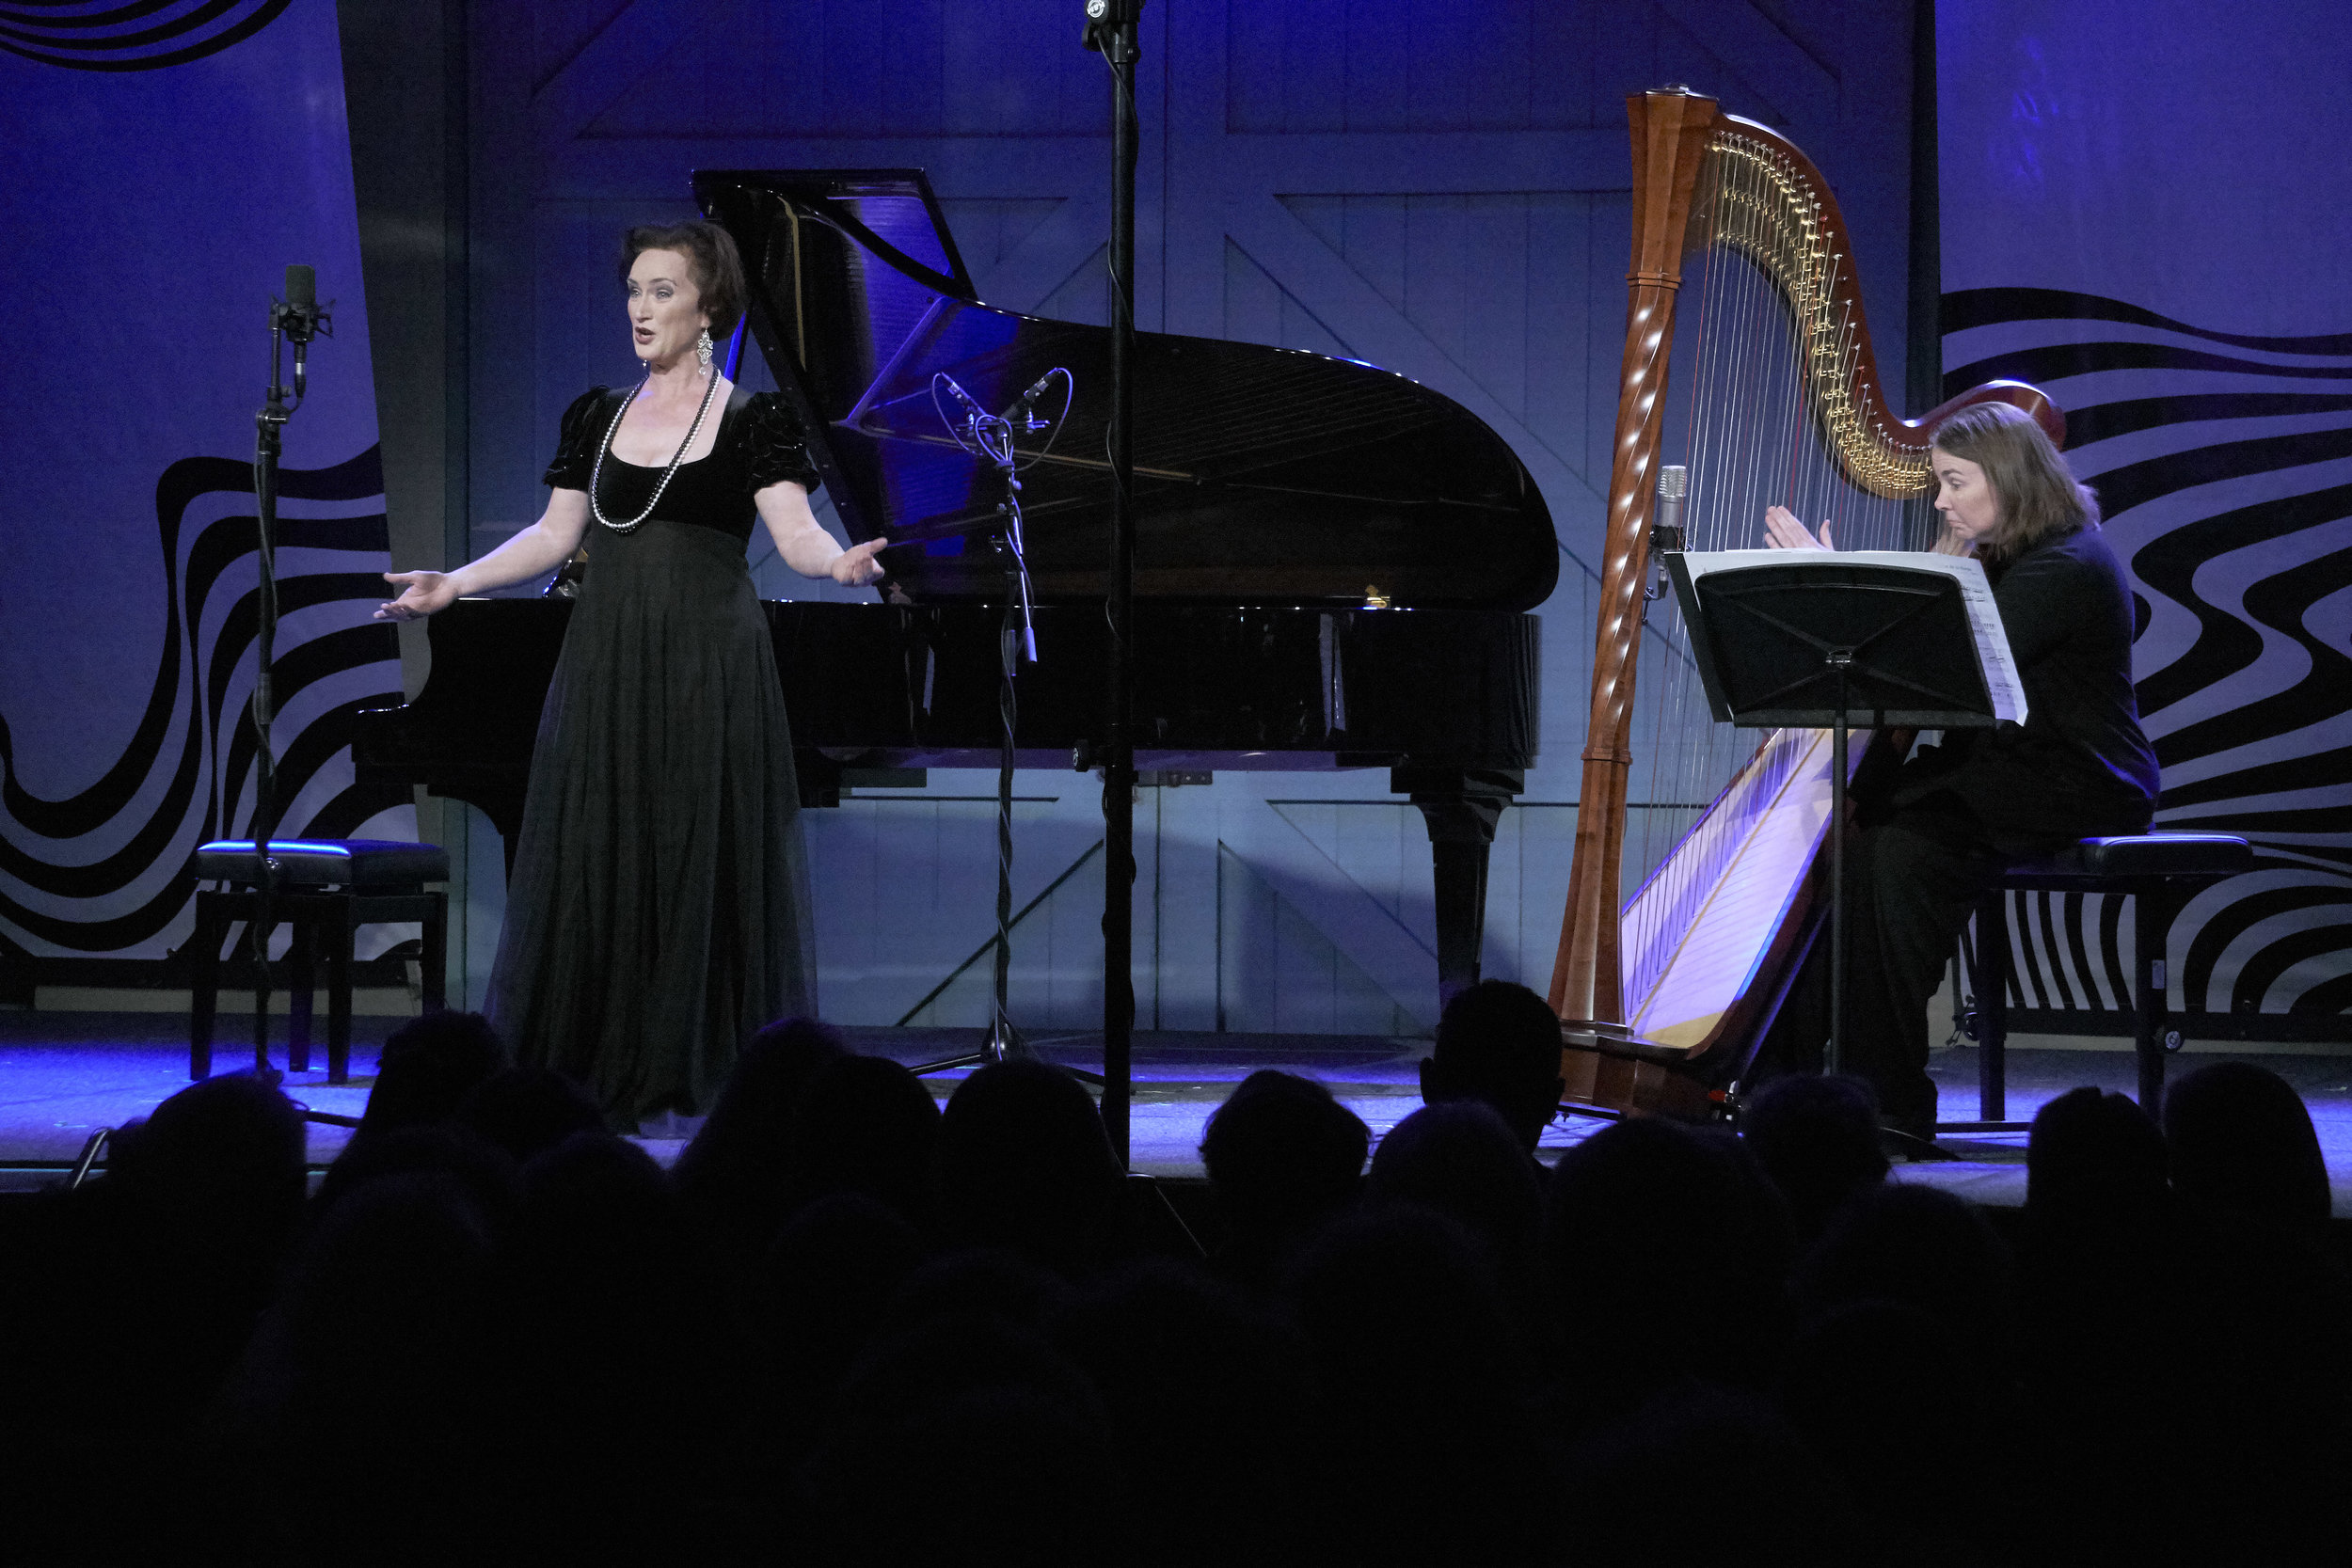 Concert 16 - Barricades of Time. 